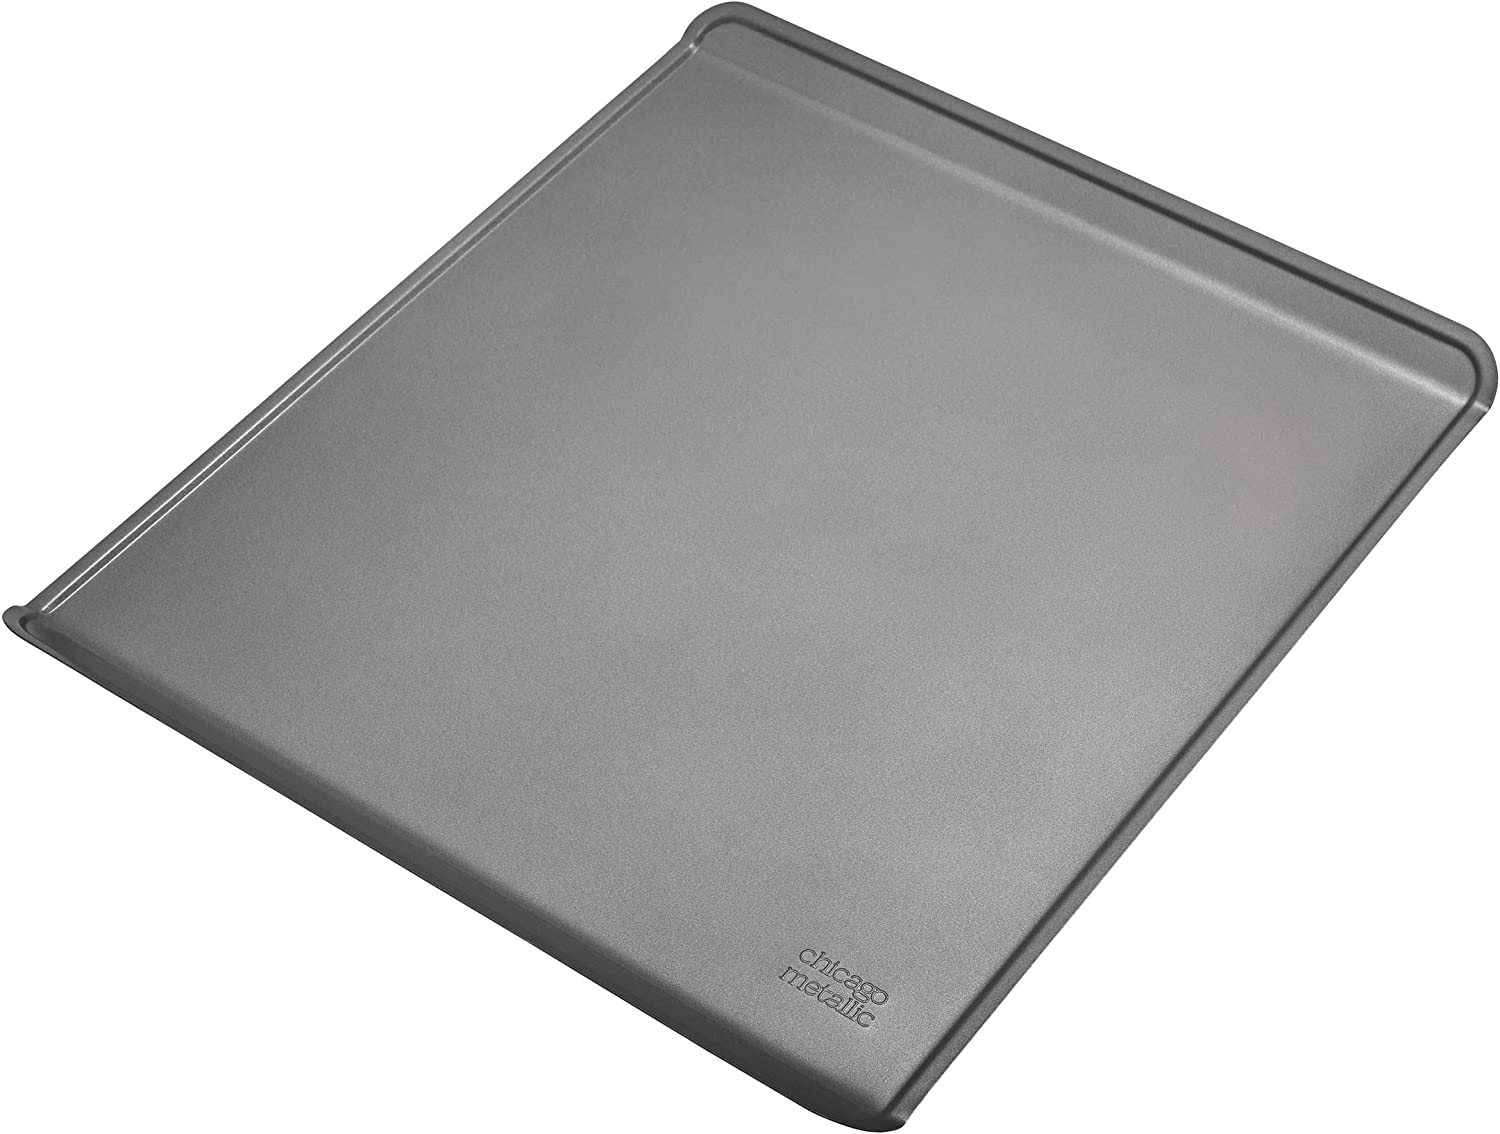 Chicago Metallic Commercial II Non-Stick Large Cookie Sheet, 15-3/4 by 13-3/4-Inch